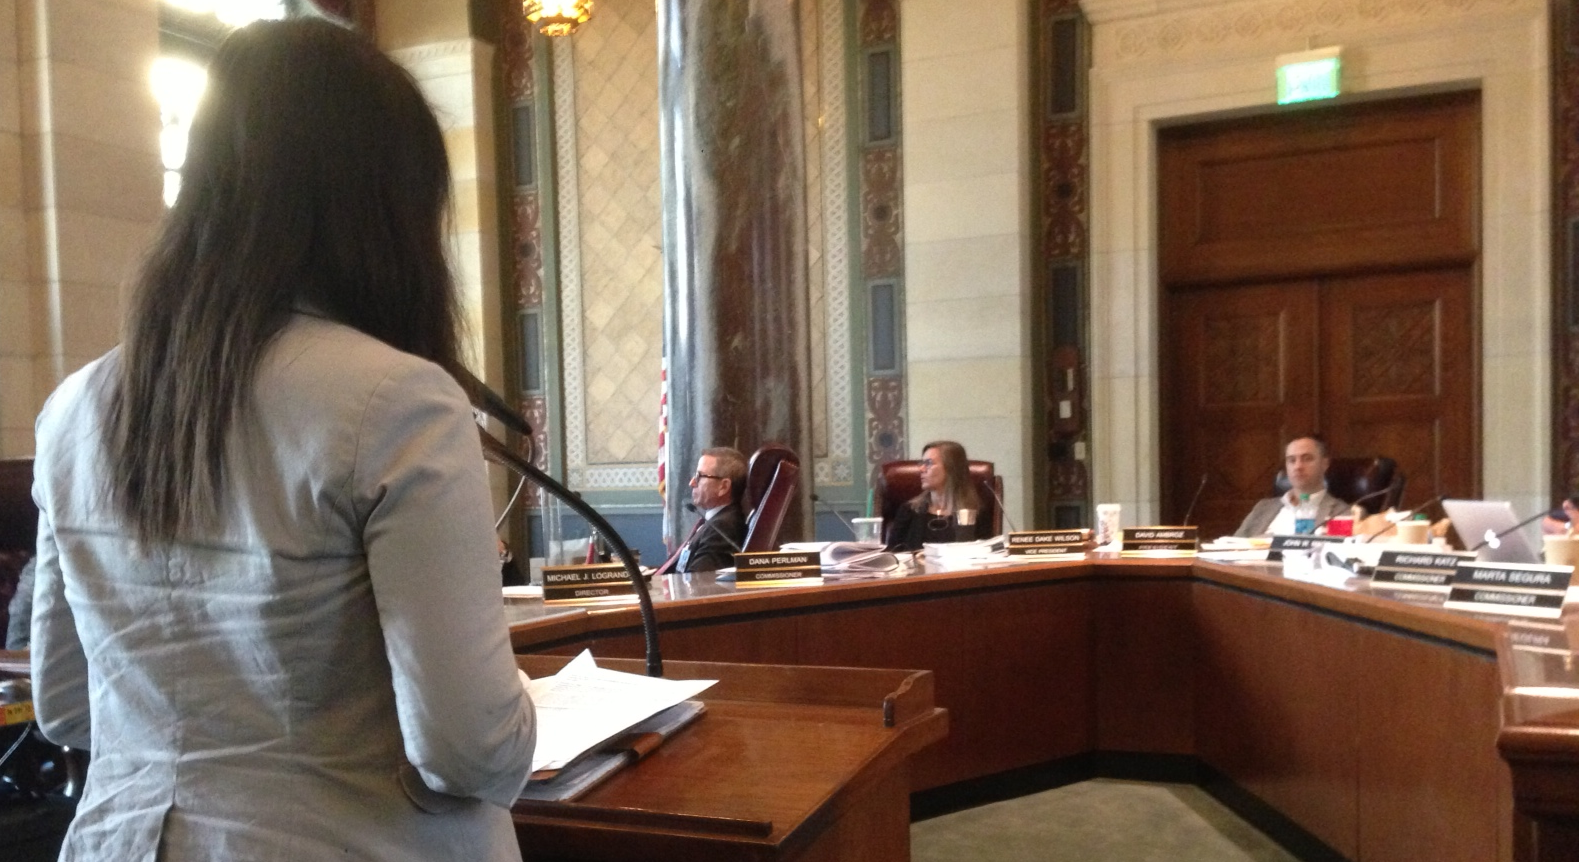 My Law presents on Mobilty Plan 2035 at L.A.'s Planning Commission